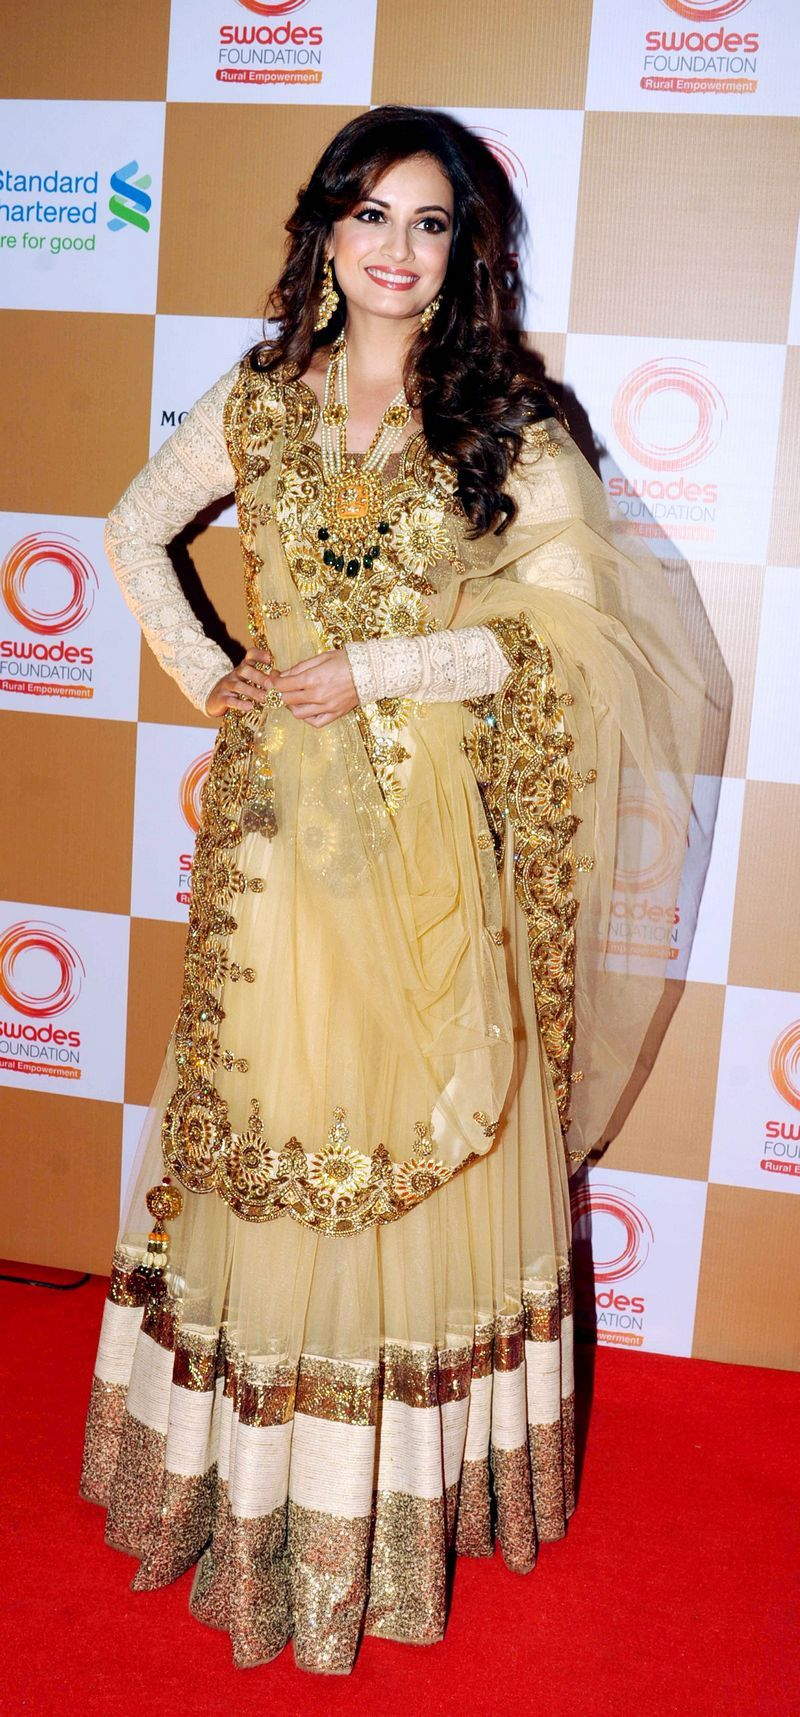 The bling on Dia Mirza's outfit was blinding!